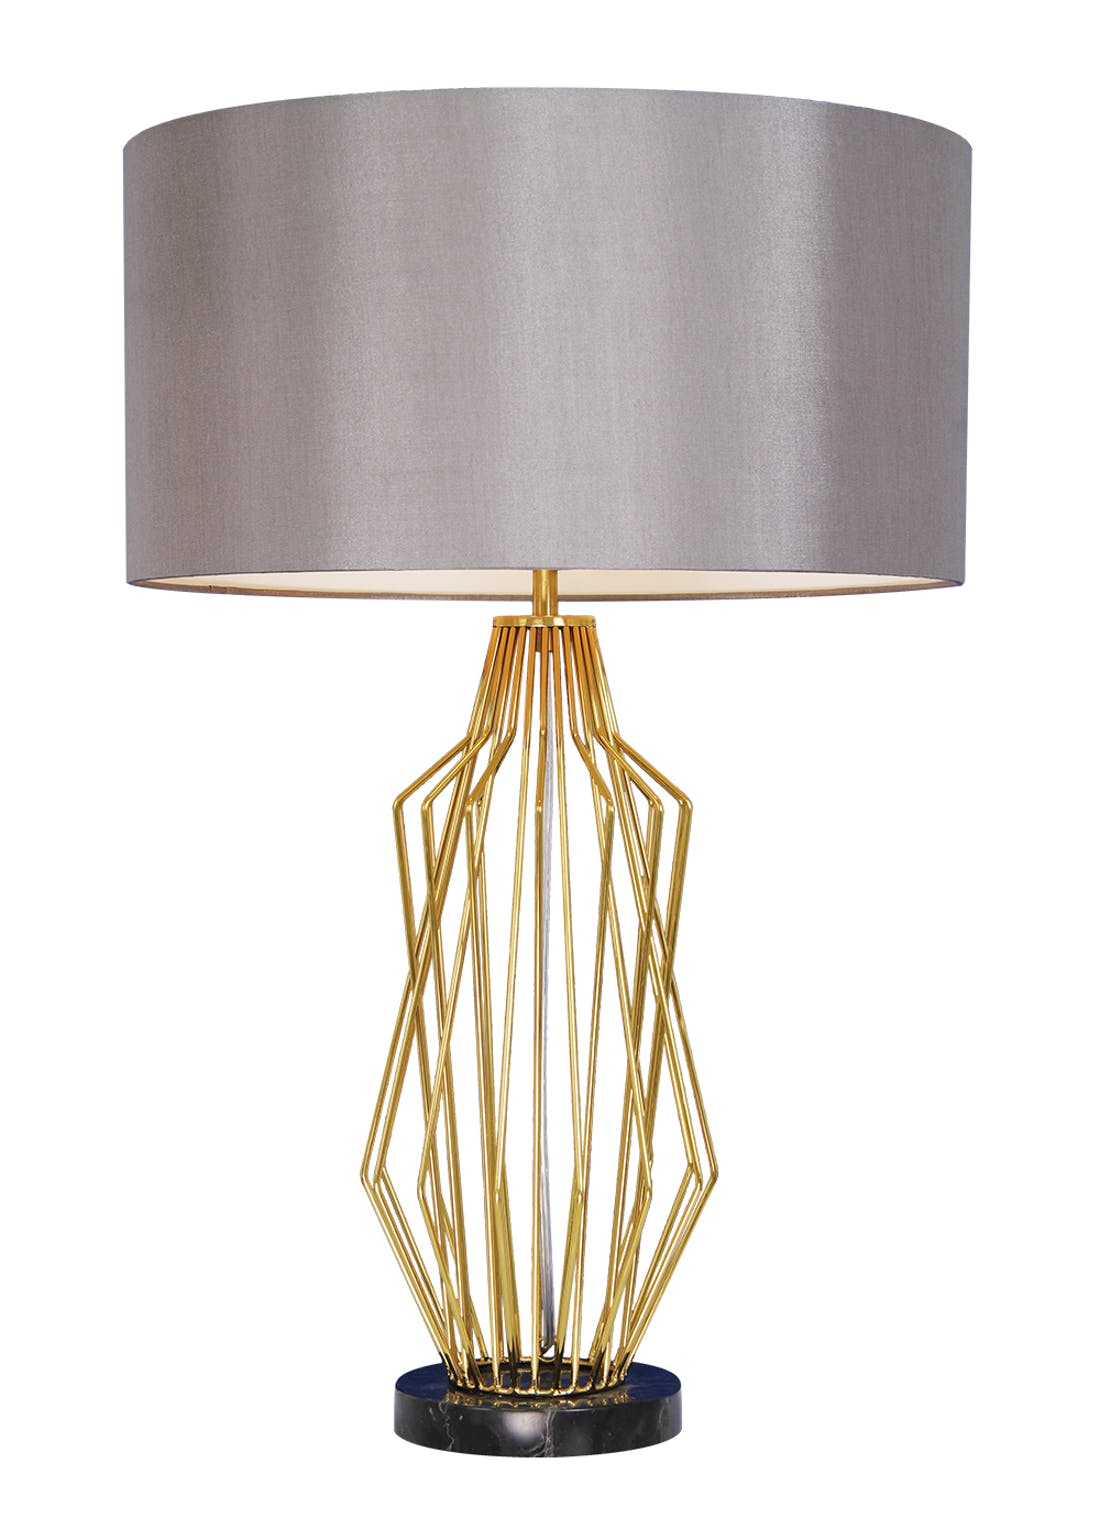 Hector Wire Table Lamp (H65cm x W35cm)